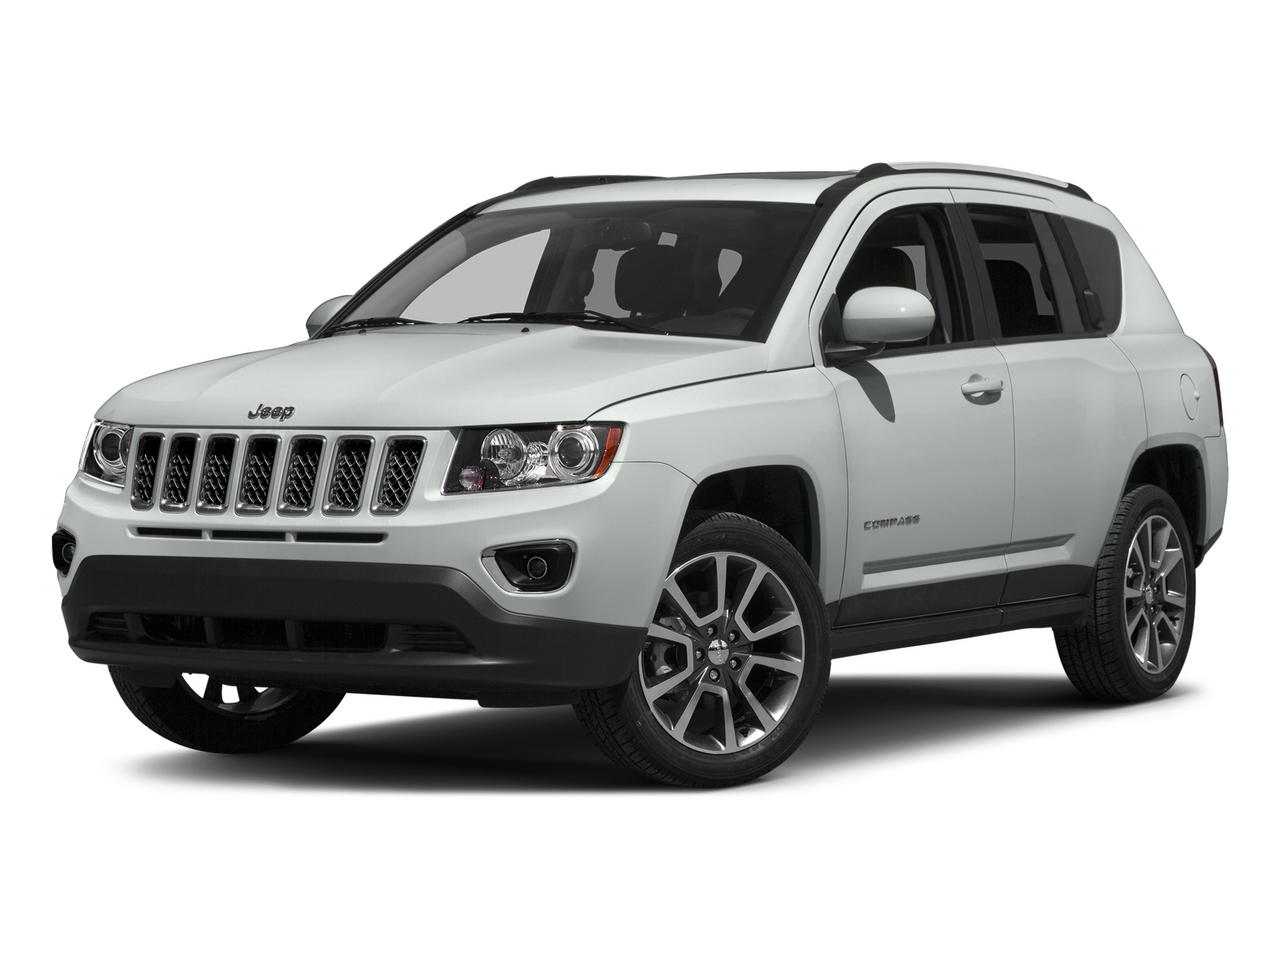 2015 Jeep Compass LATITUDE SUV Slide